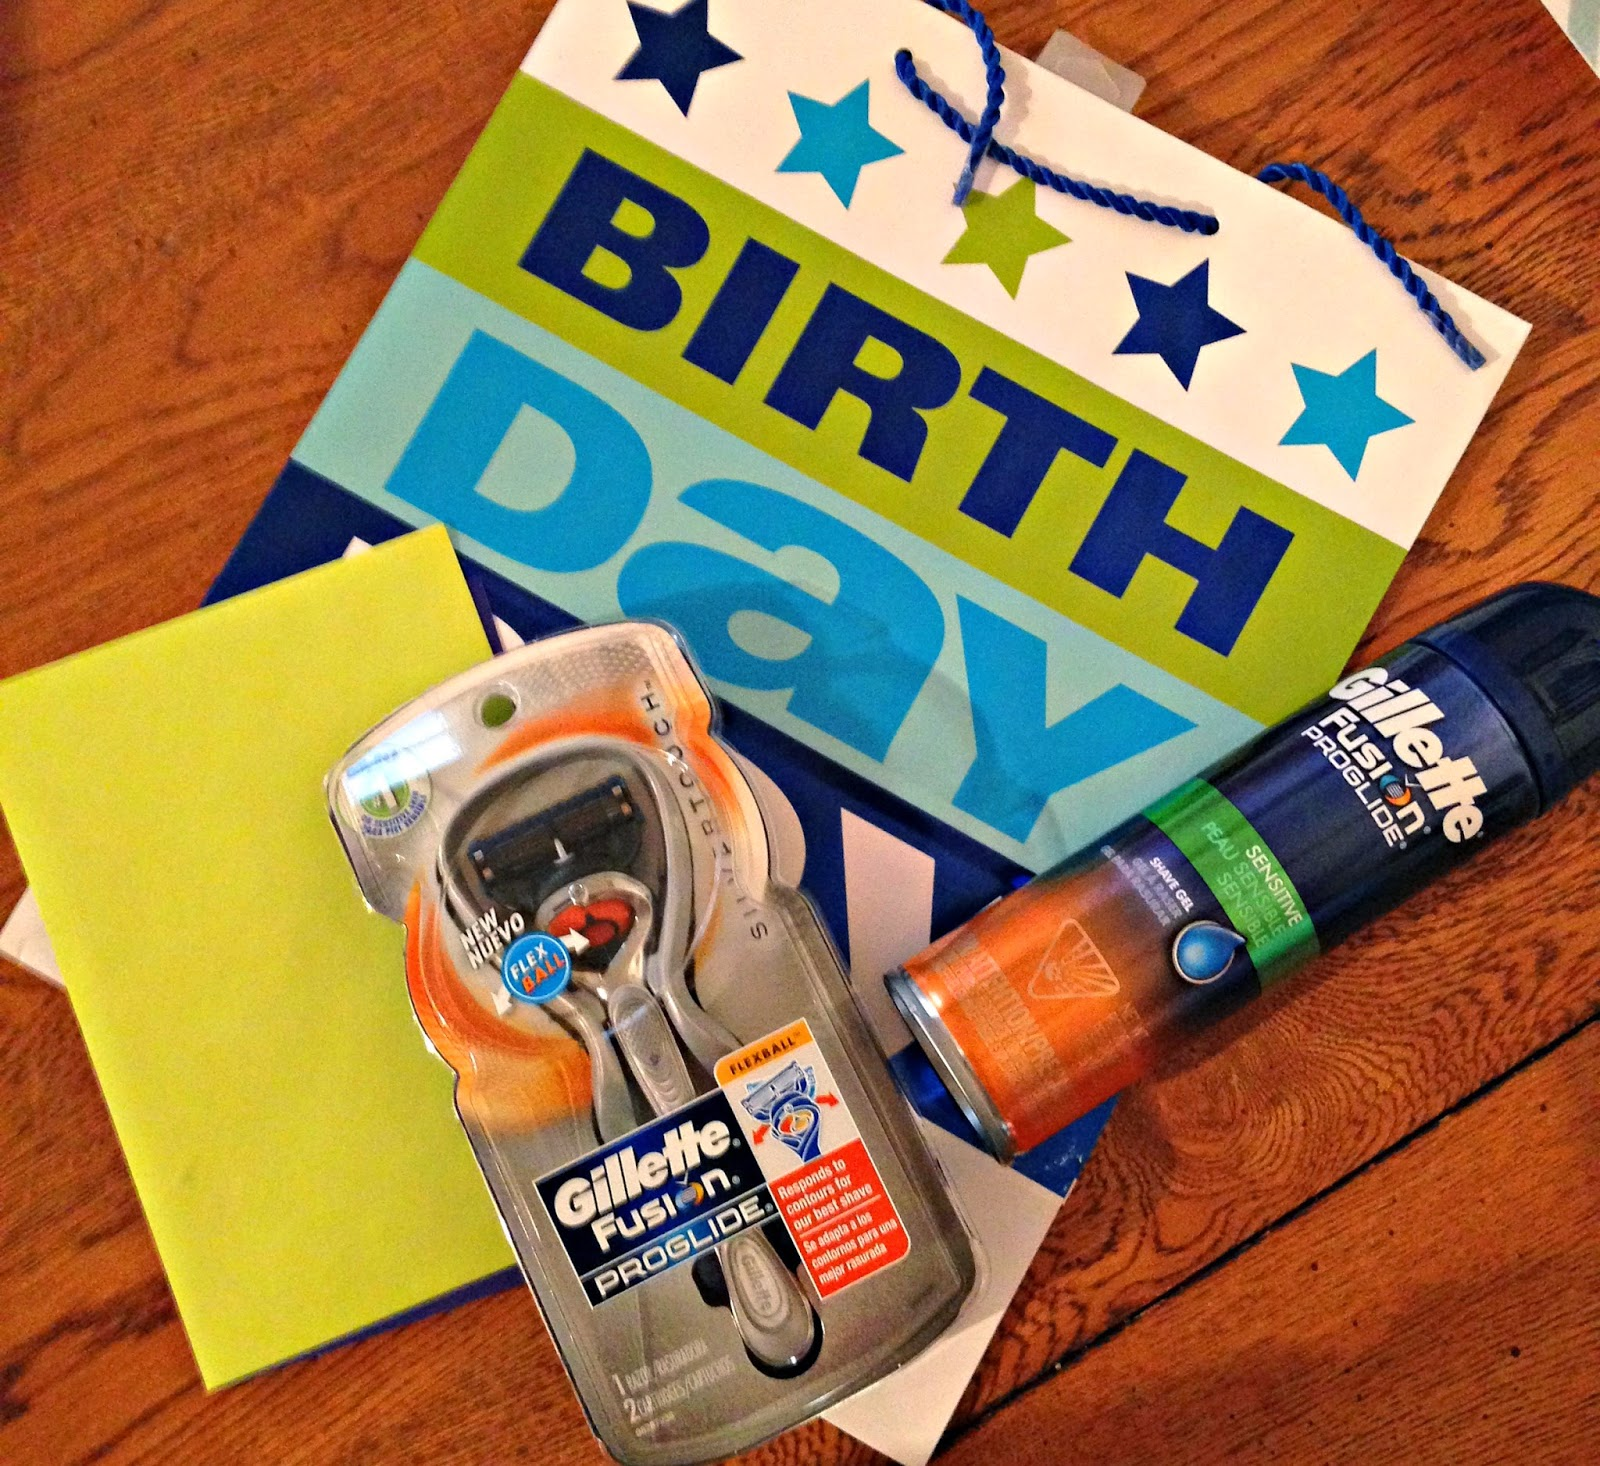 gillette, gillette razors, gillette fusion proglide, shaving, shave.  Great gift ideas for men.  Birthday presents for husbands.